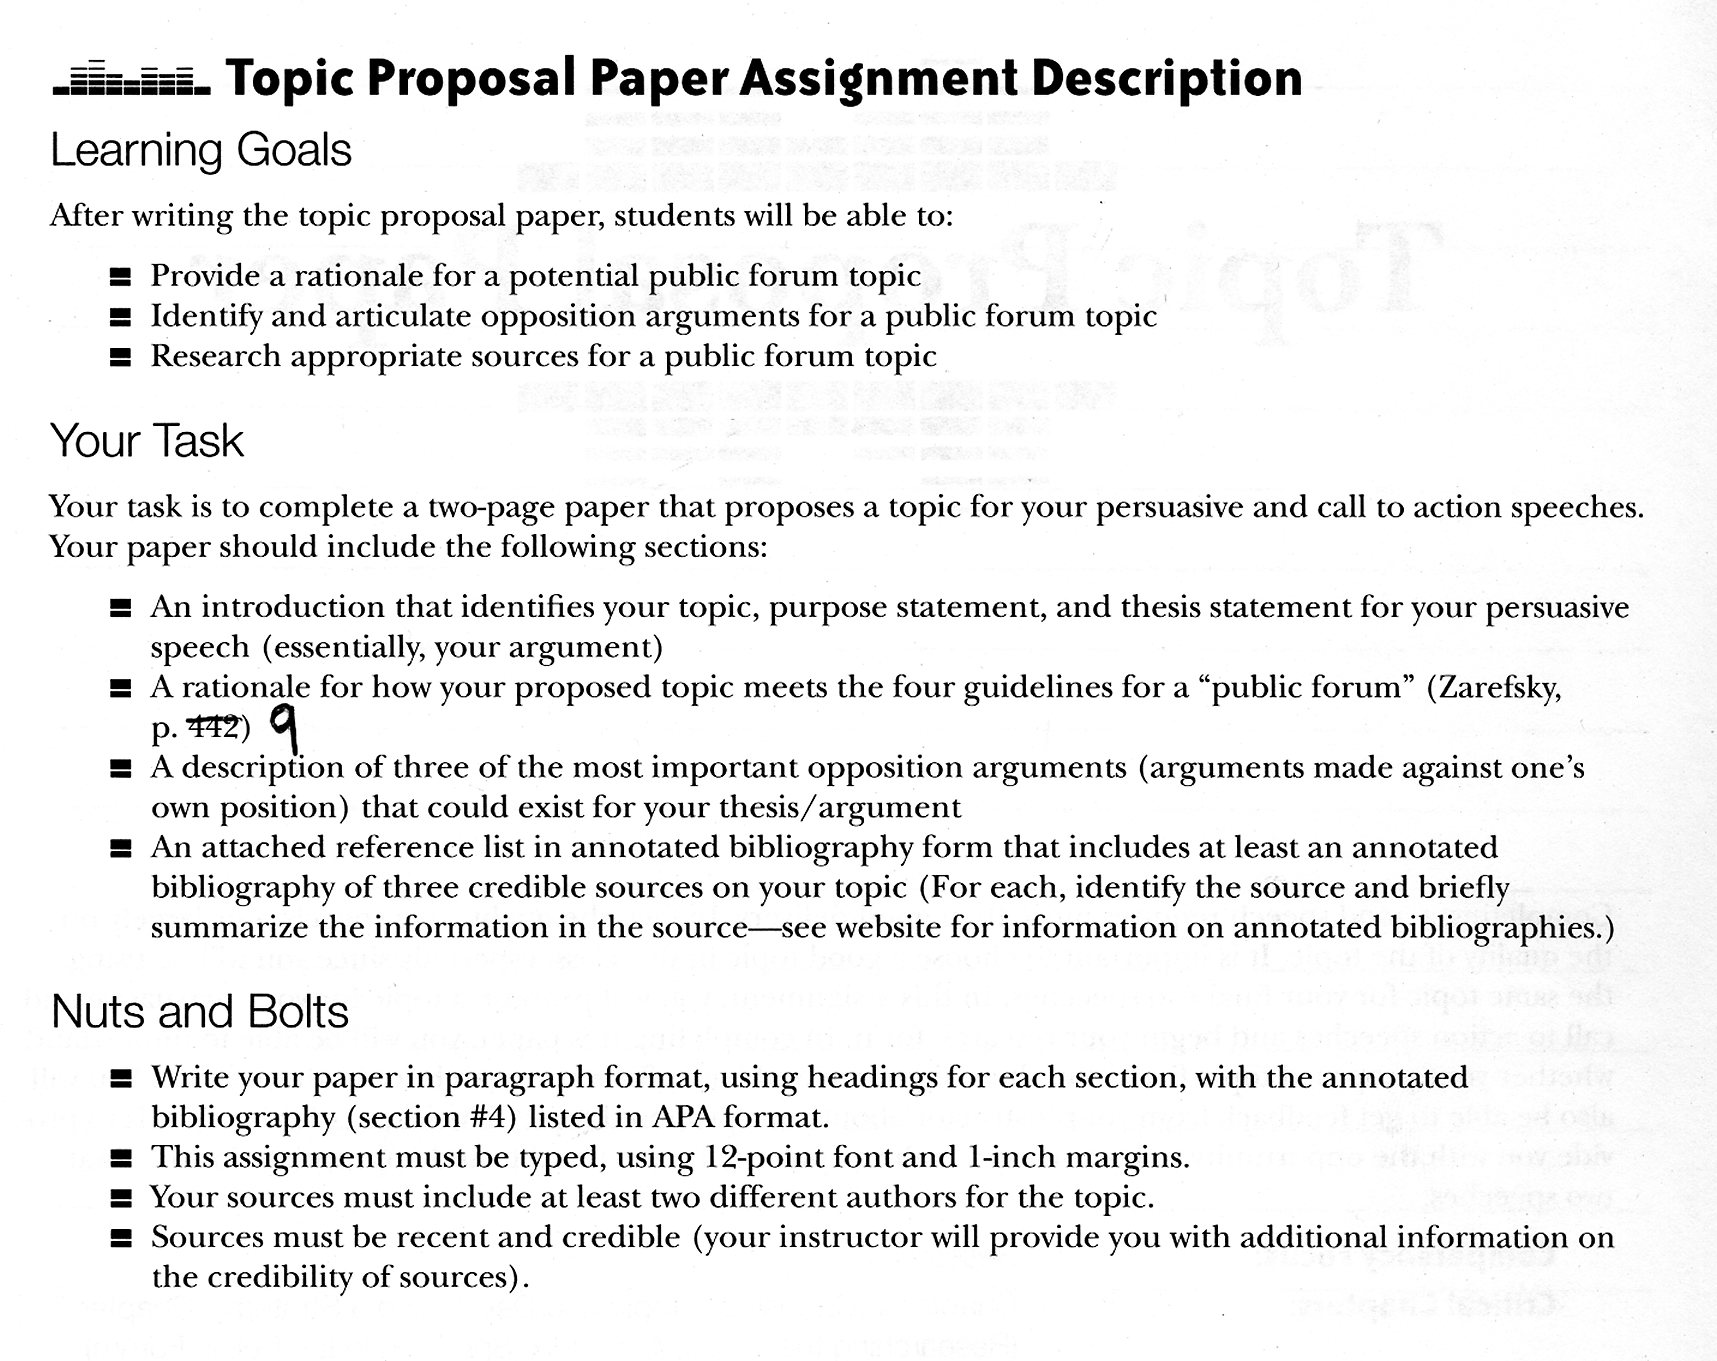 apa style research proposal